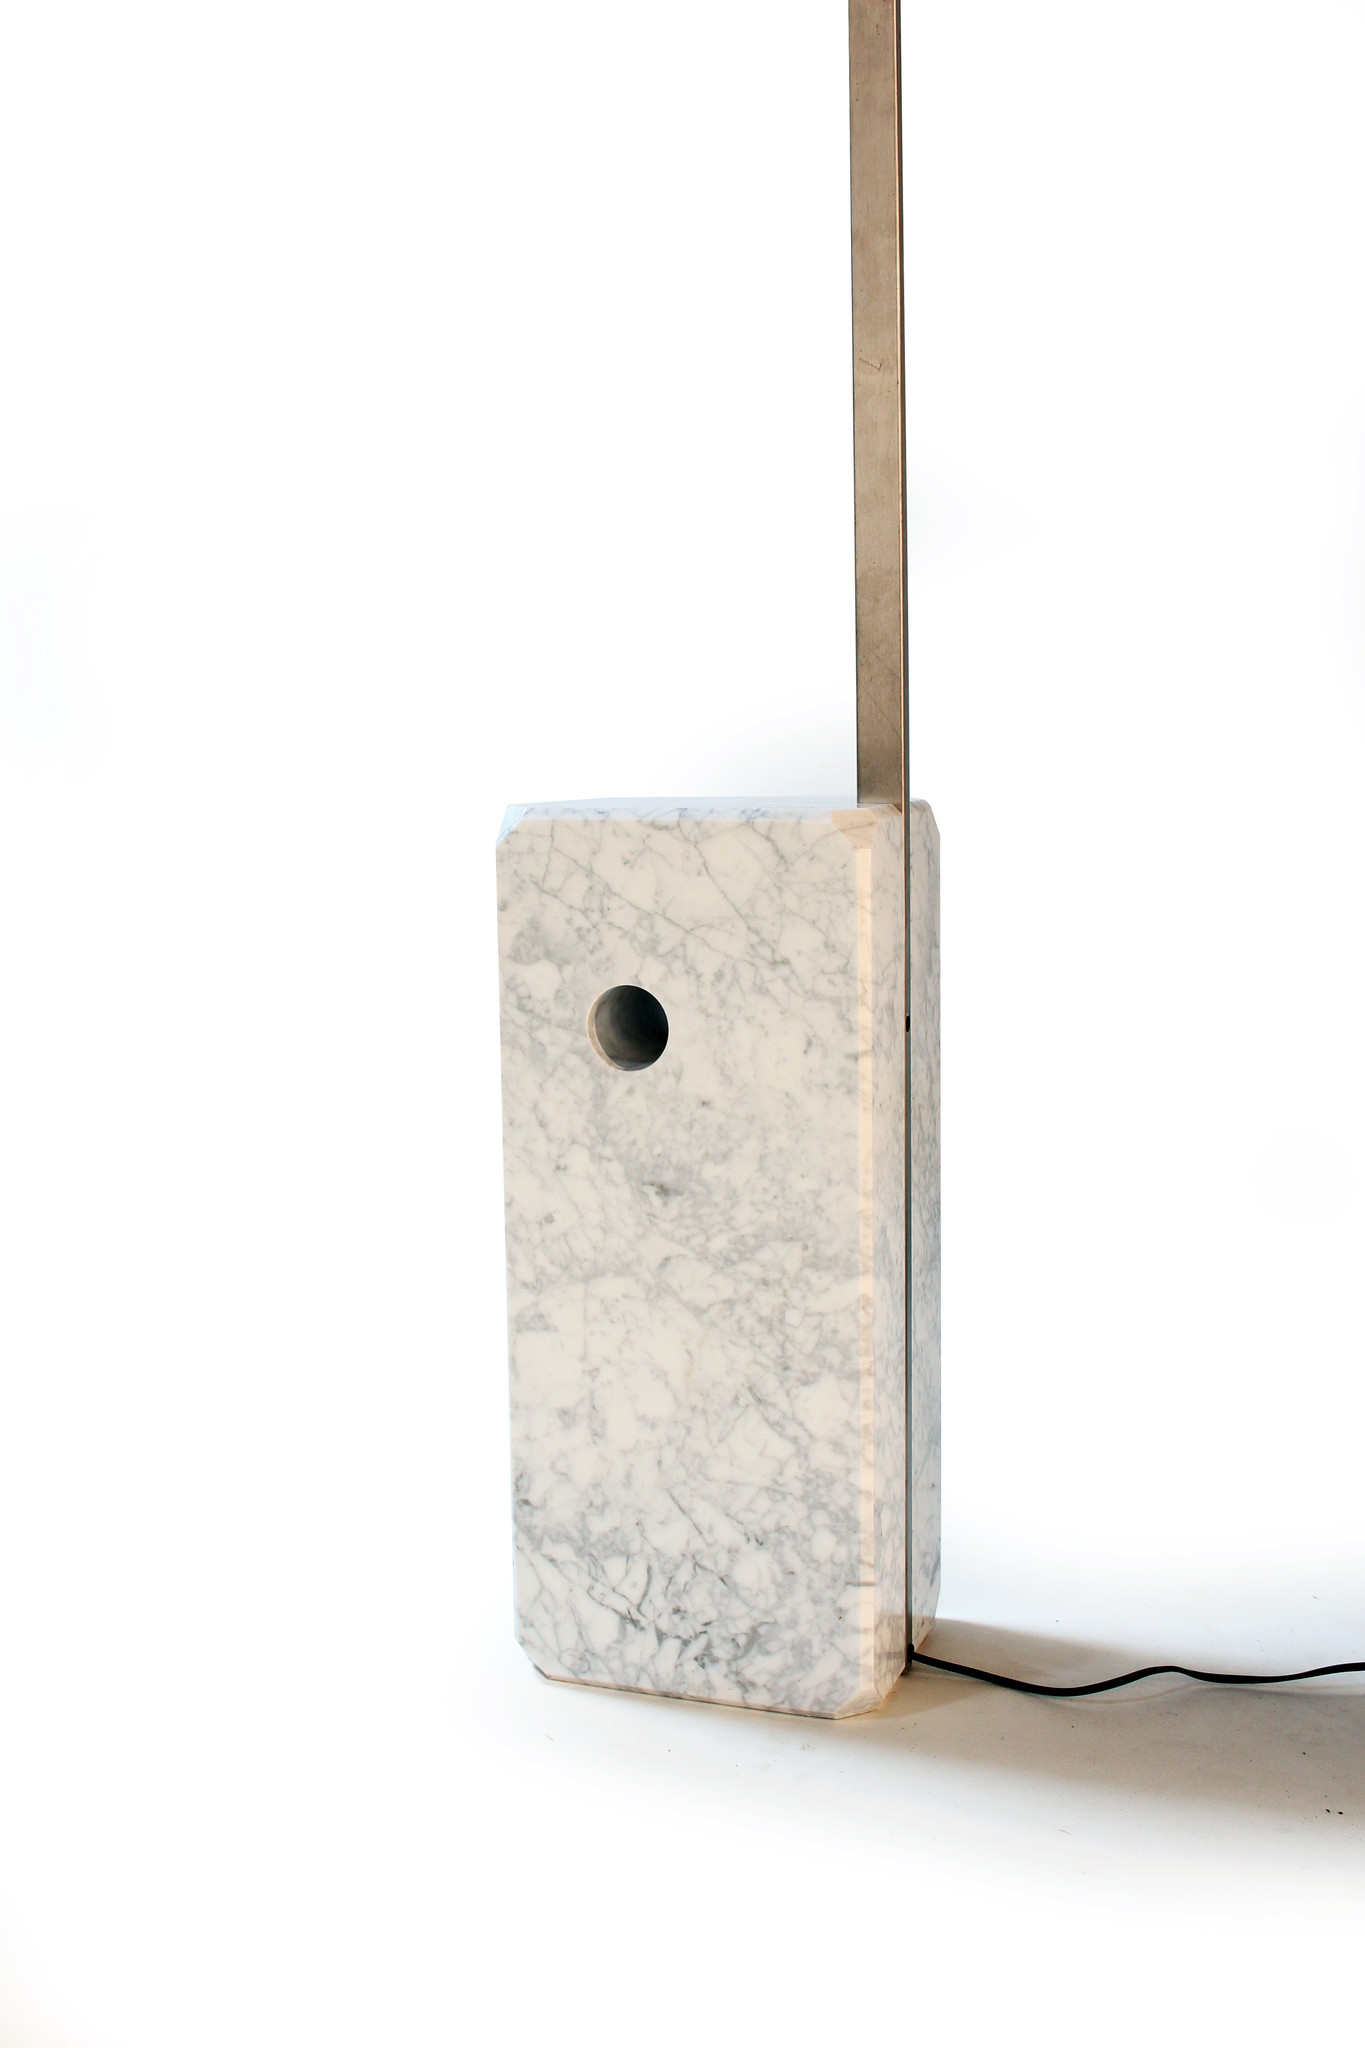 Vintage Flos arco lamp designed by Archille and Piere Giacomo Castiglioni in 1962